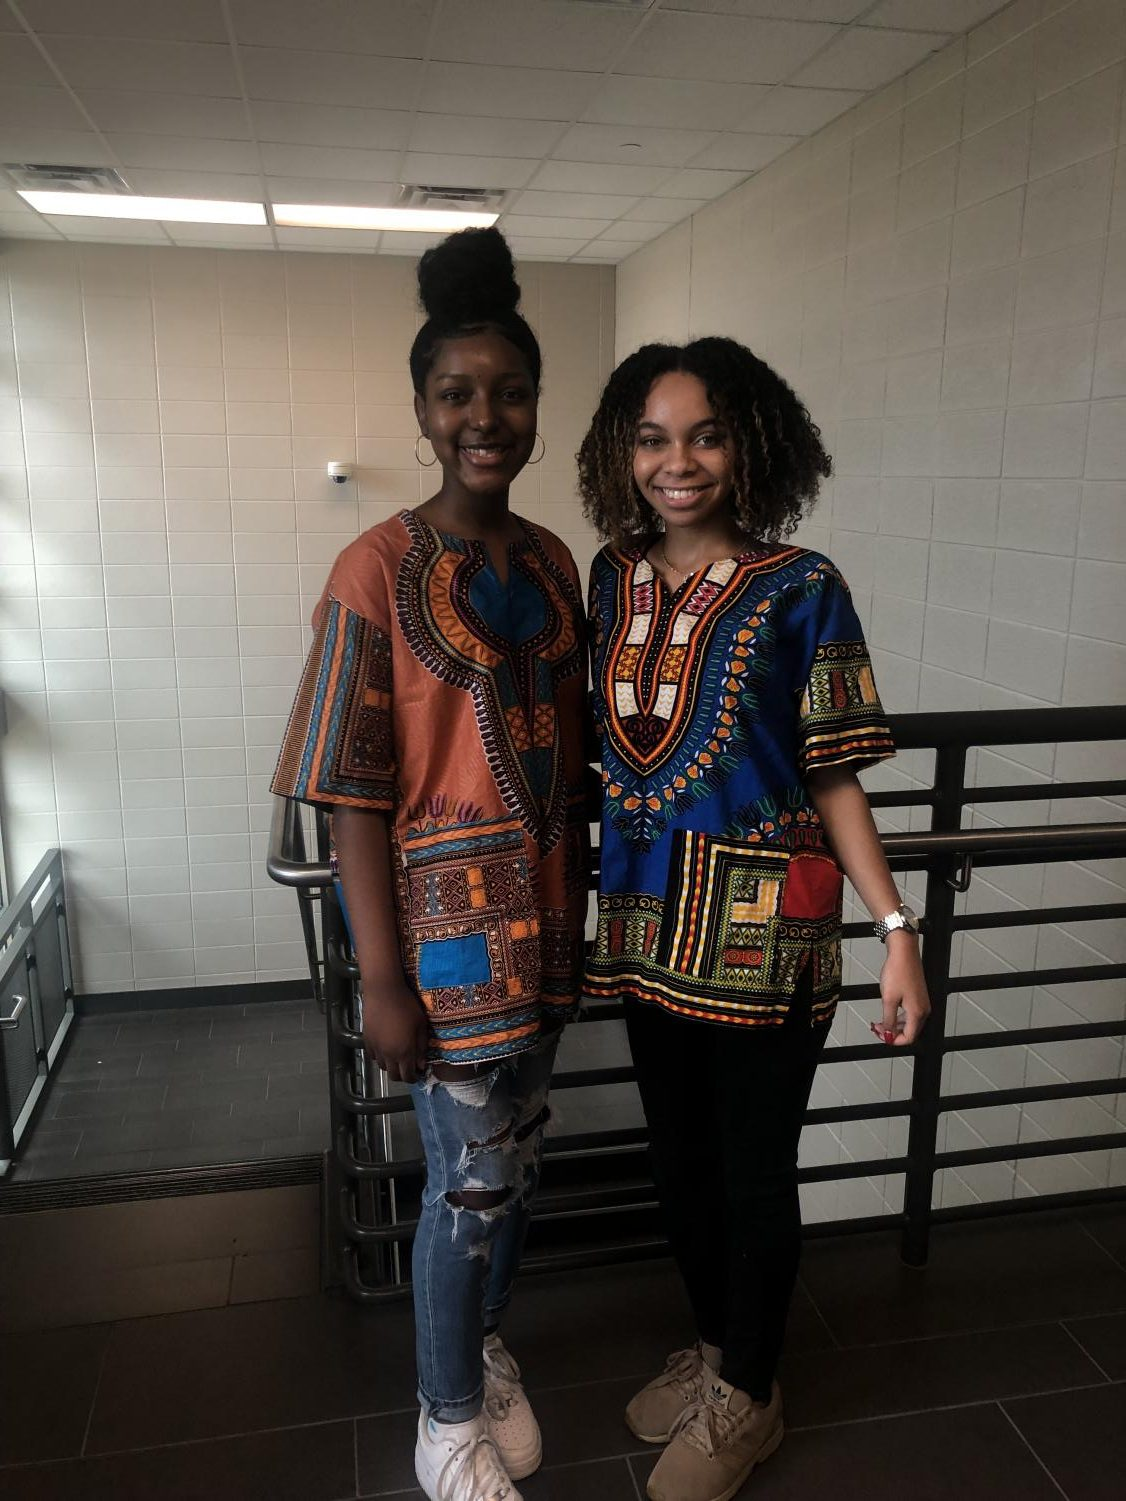 Seniors Myah McNair and Maya Monroe dressed in African patterened shirts.